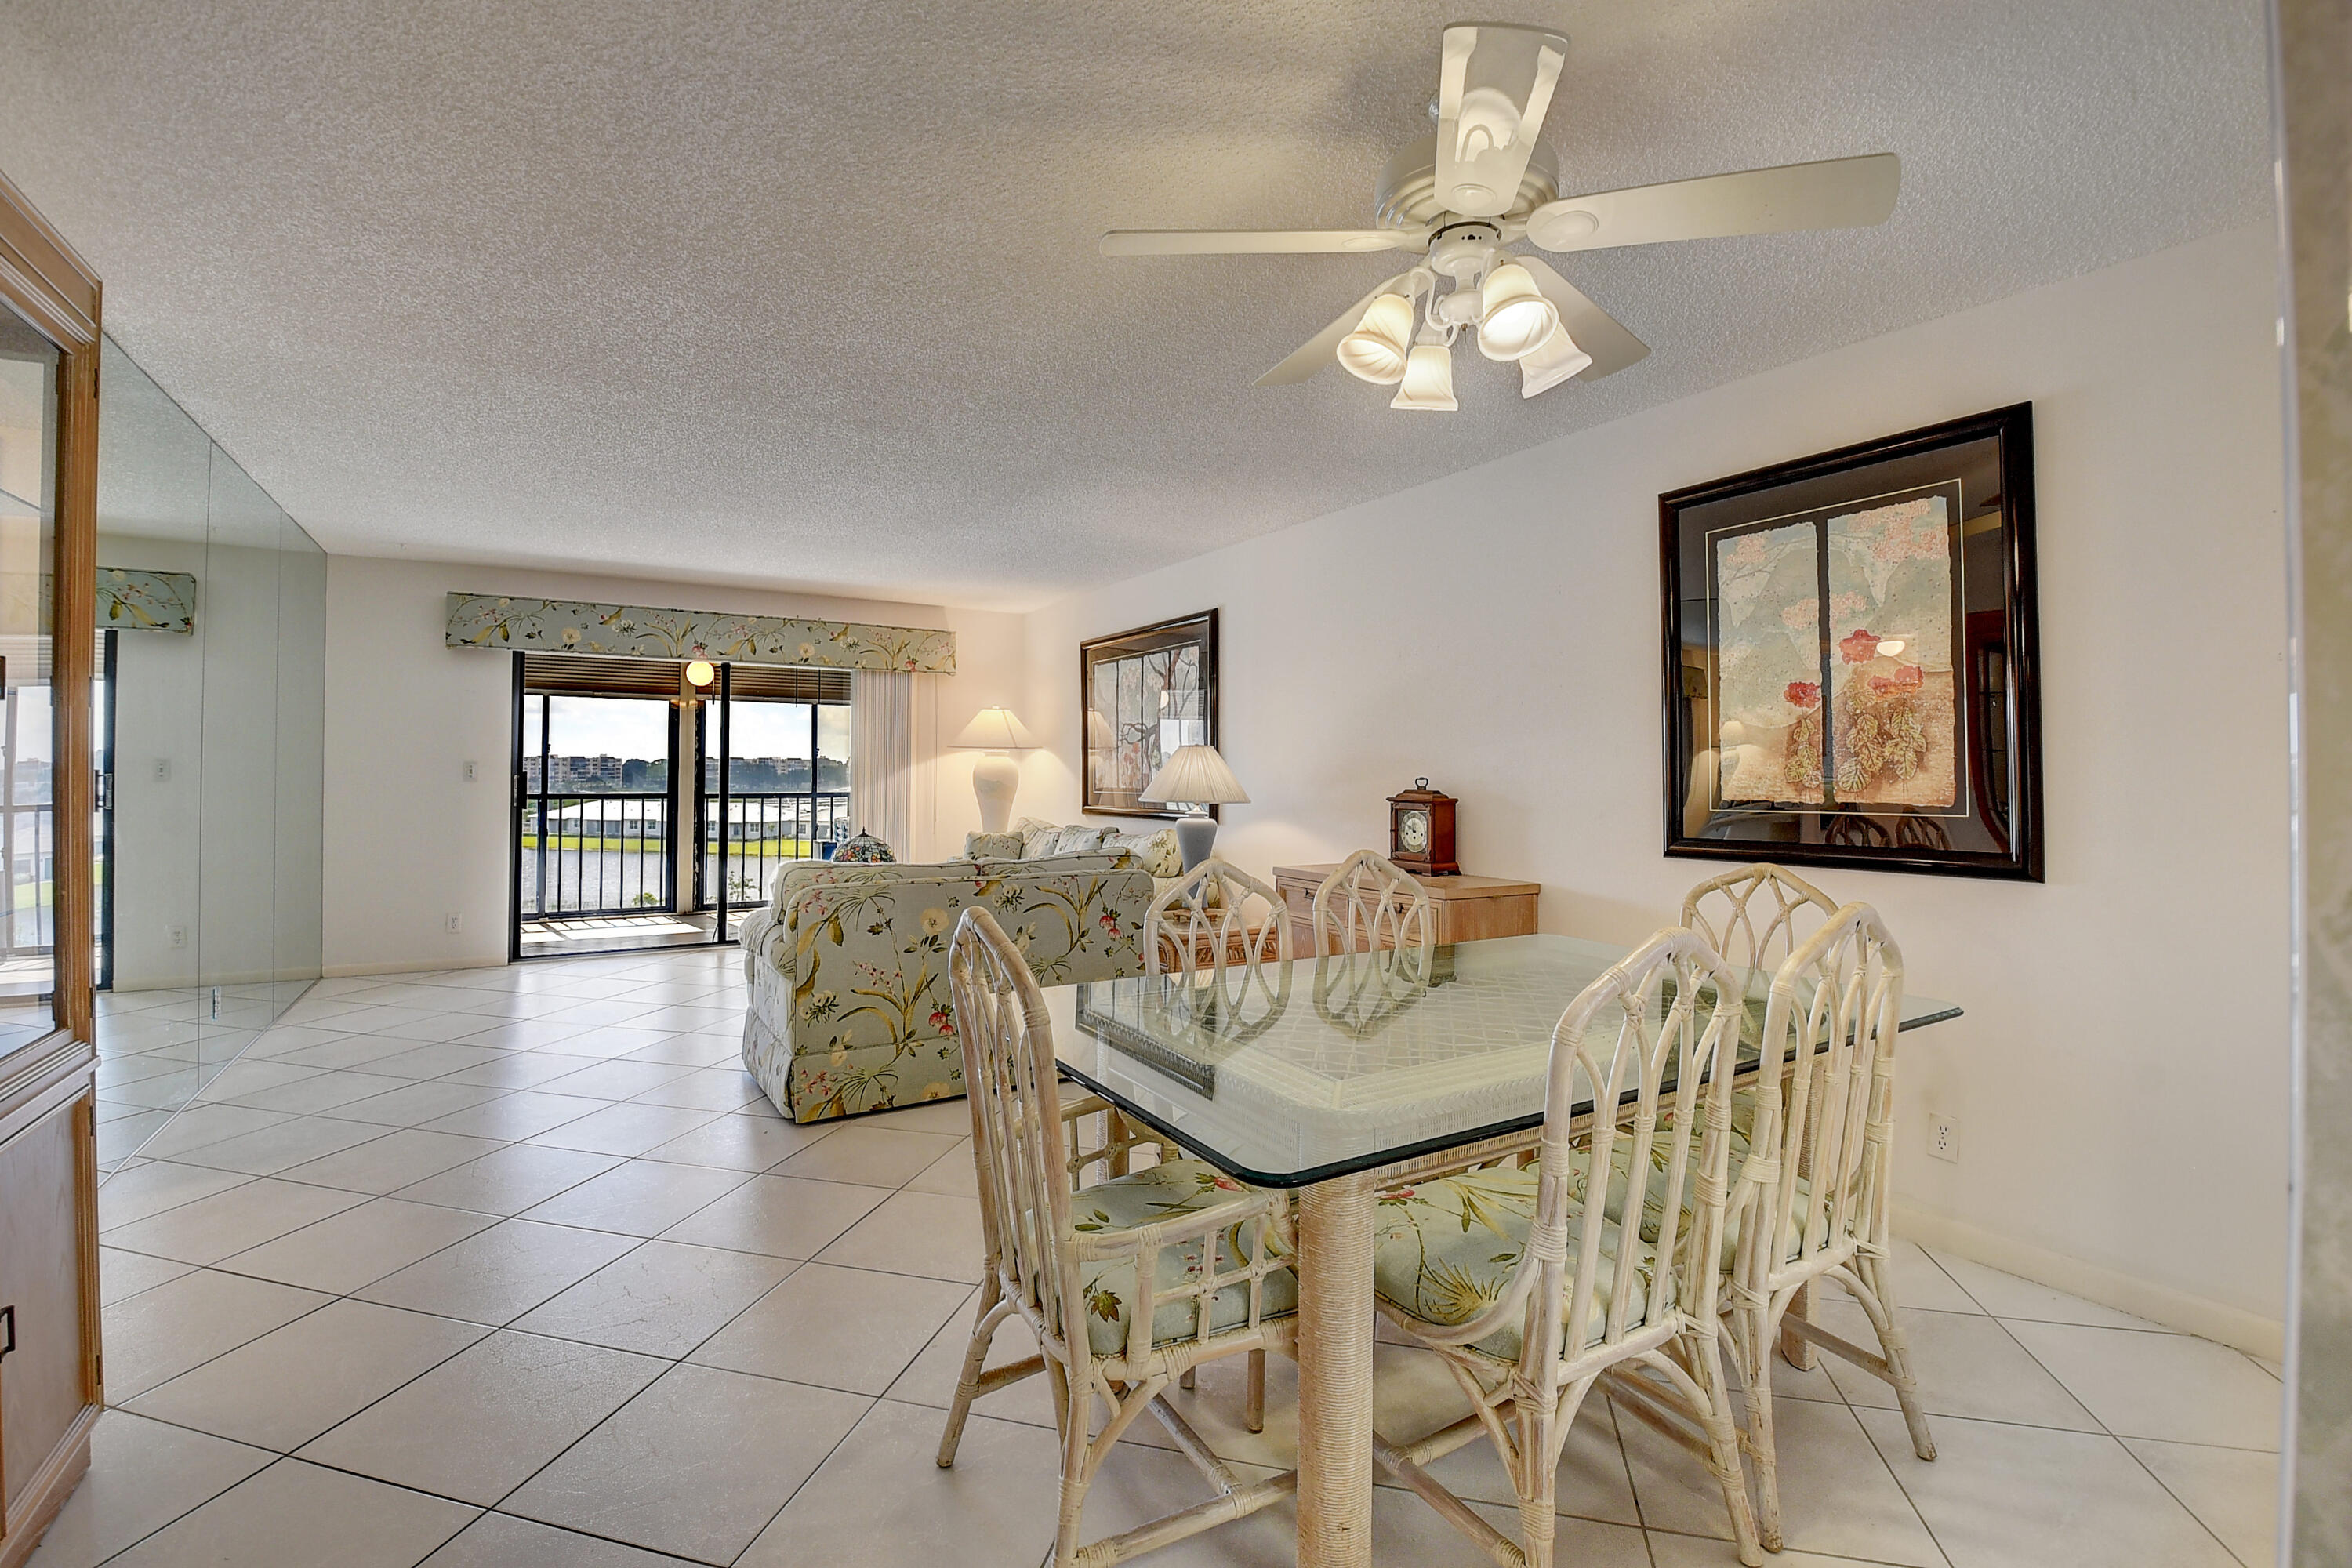 14426  Amberly Lane 503 For Sale 10731478, FL